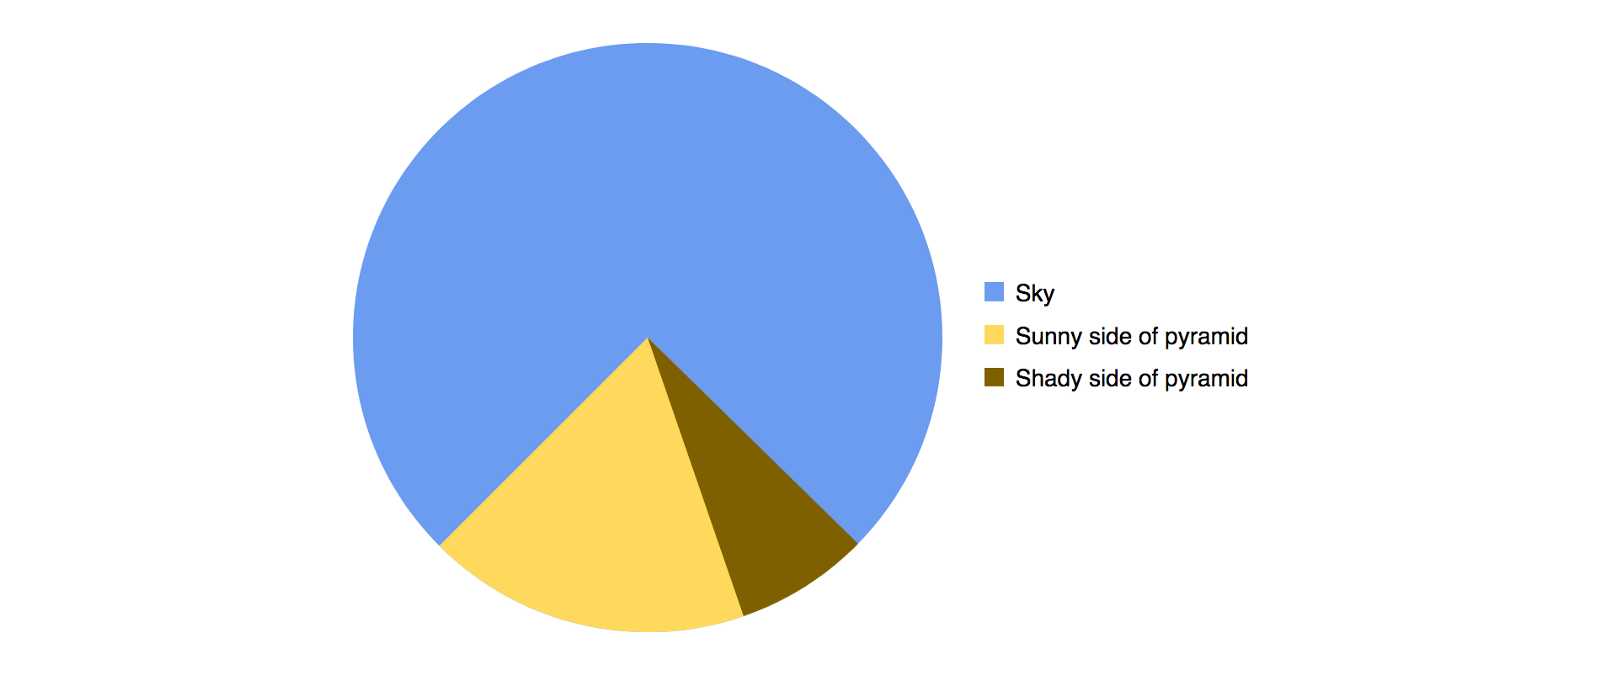 Do You Remember The Just Another Pie Chart Meme That Is Still Cycling On Web Well I Decided To Create A Css Version Be Fair Am Using S